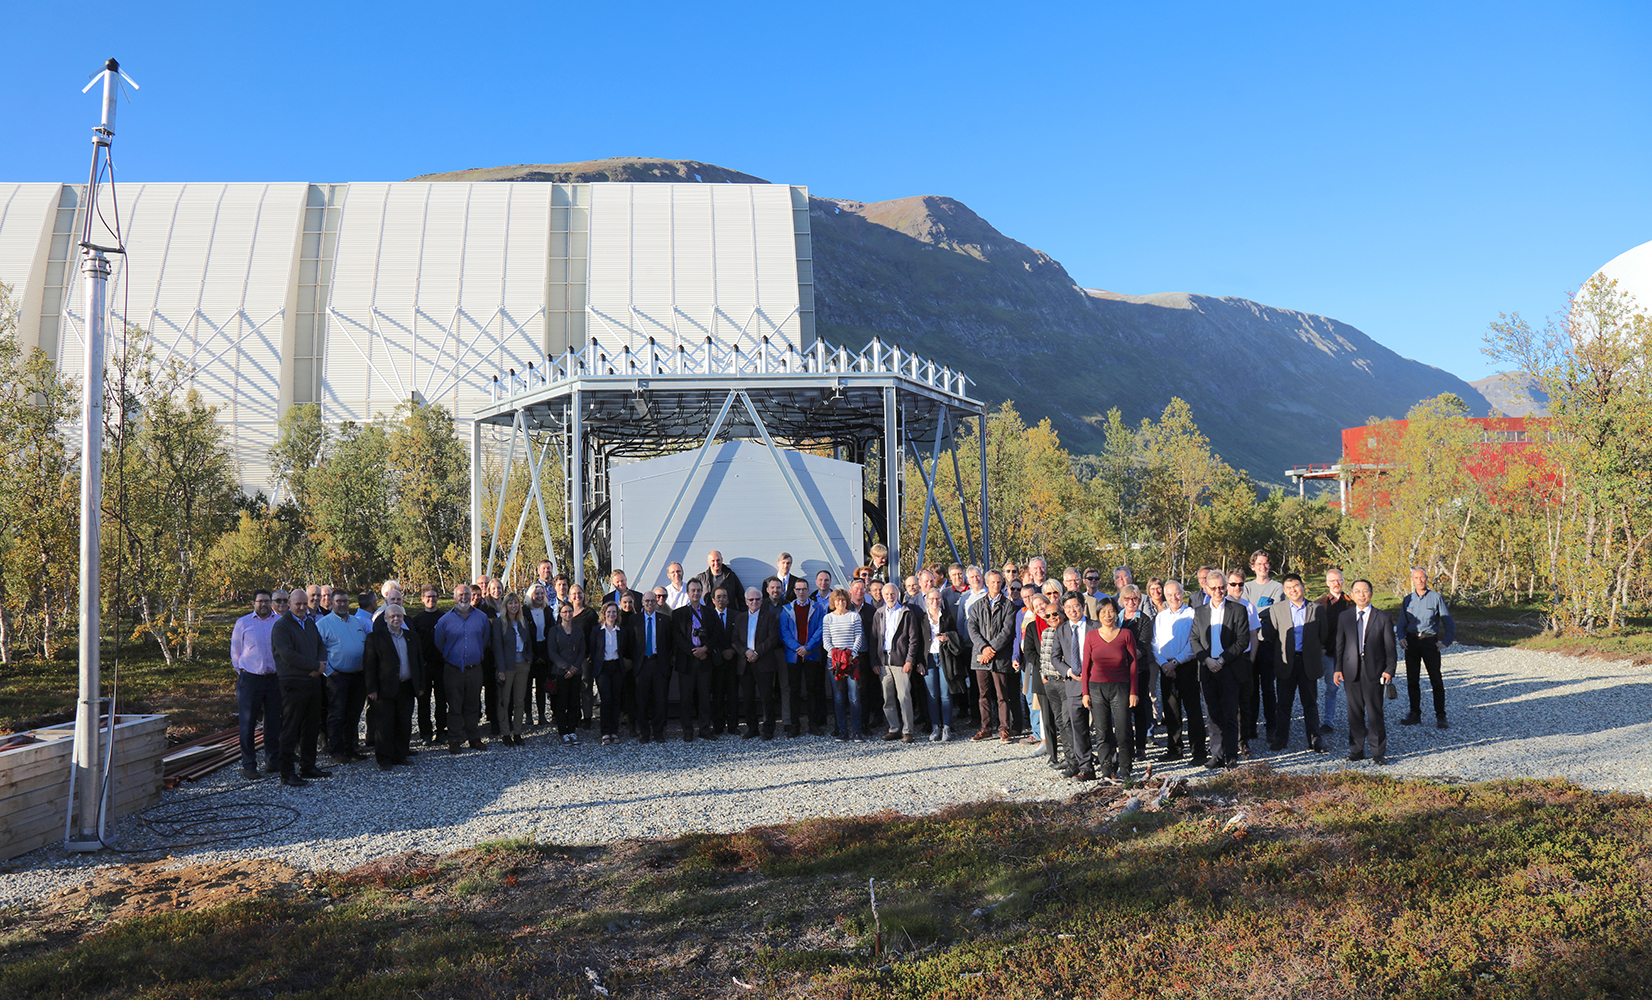 Group photo of EISCAT_3D kick-off participants infront of the EISCAT_3D test site in Ramfjordmoen.